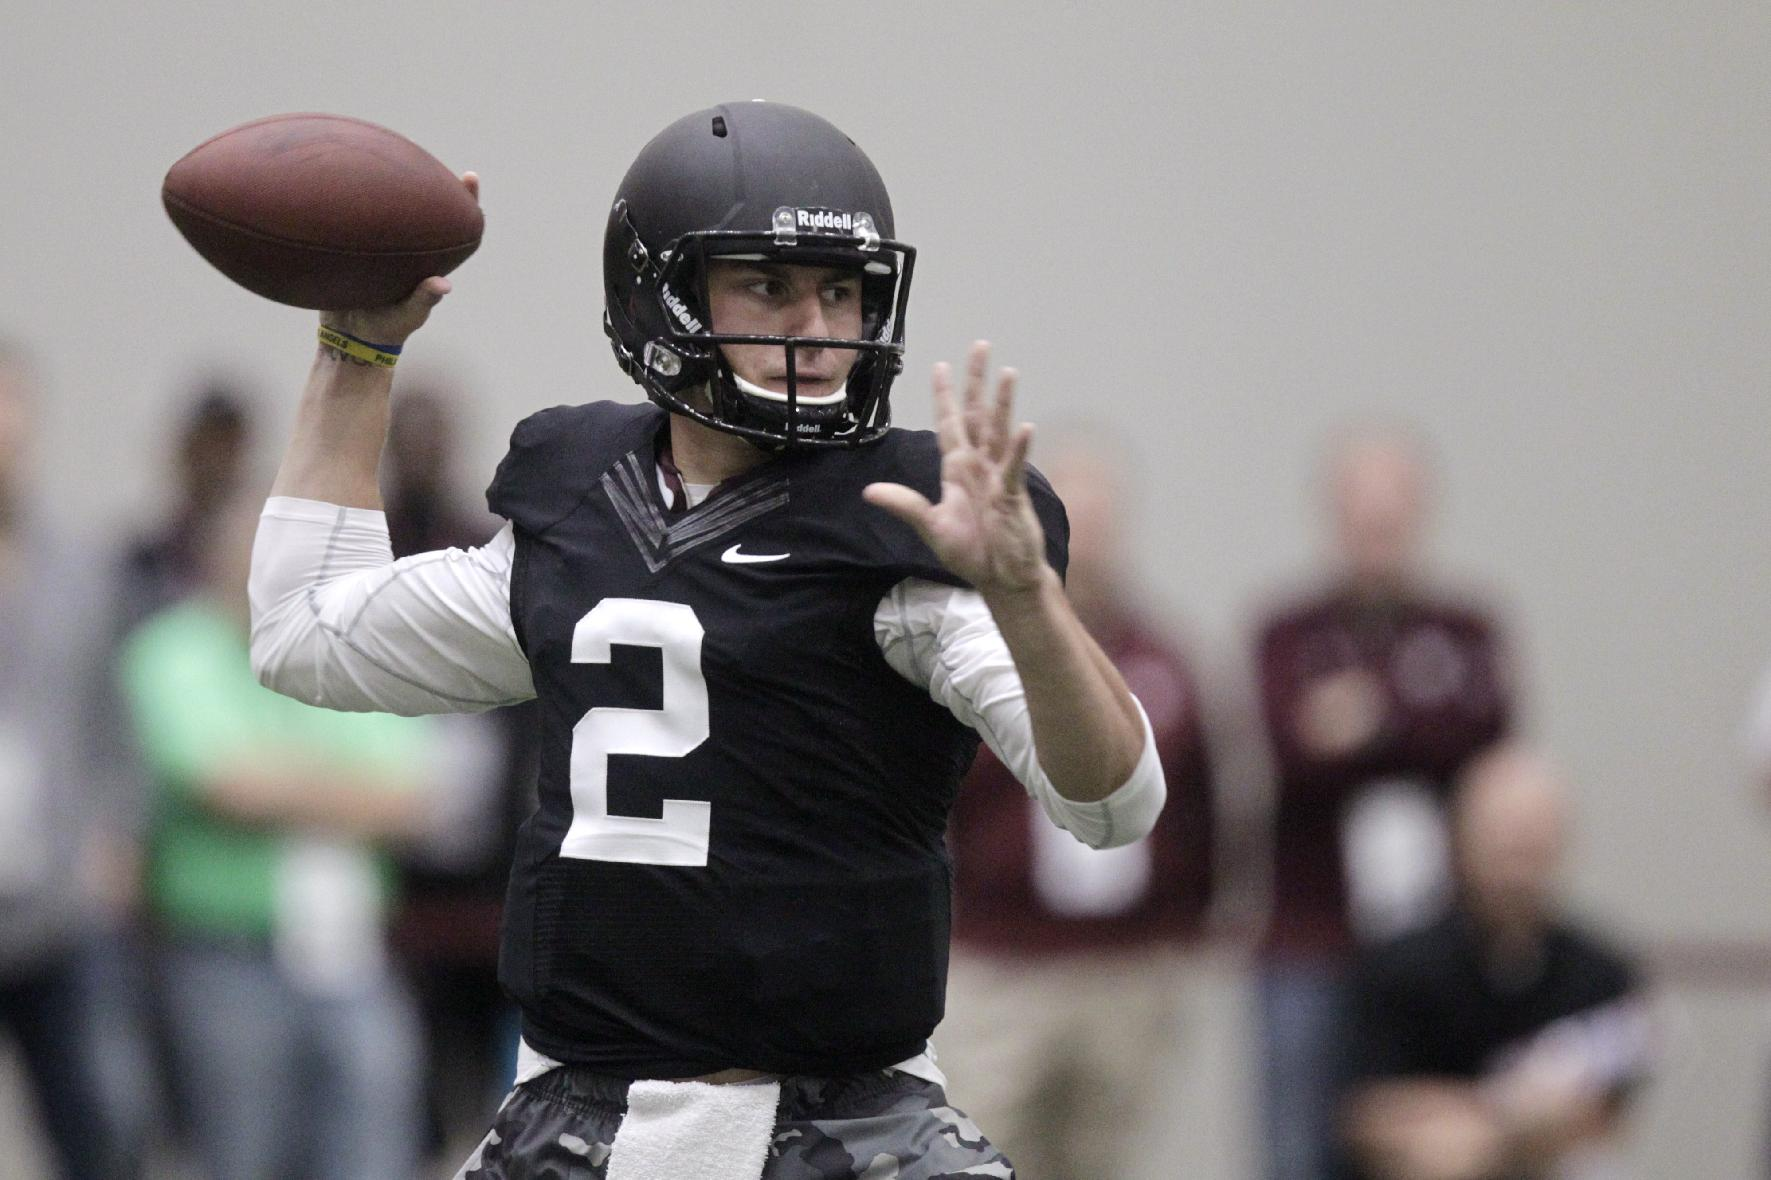 Texas A&M quarterback Johnny Manziel passes the ball during a drill at pro day for NFL football representatives in College Station, Texas, Thursday, March 27, 2014